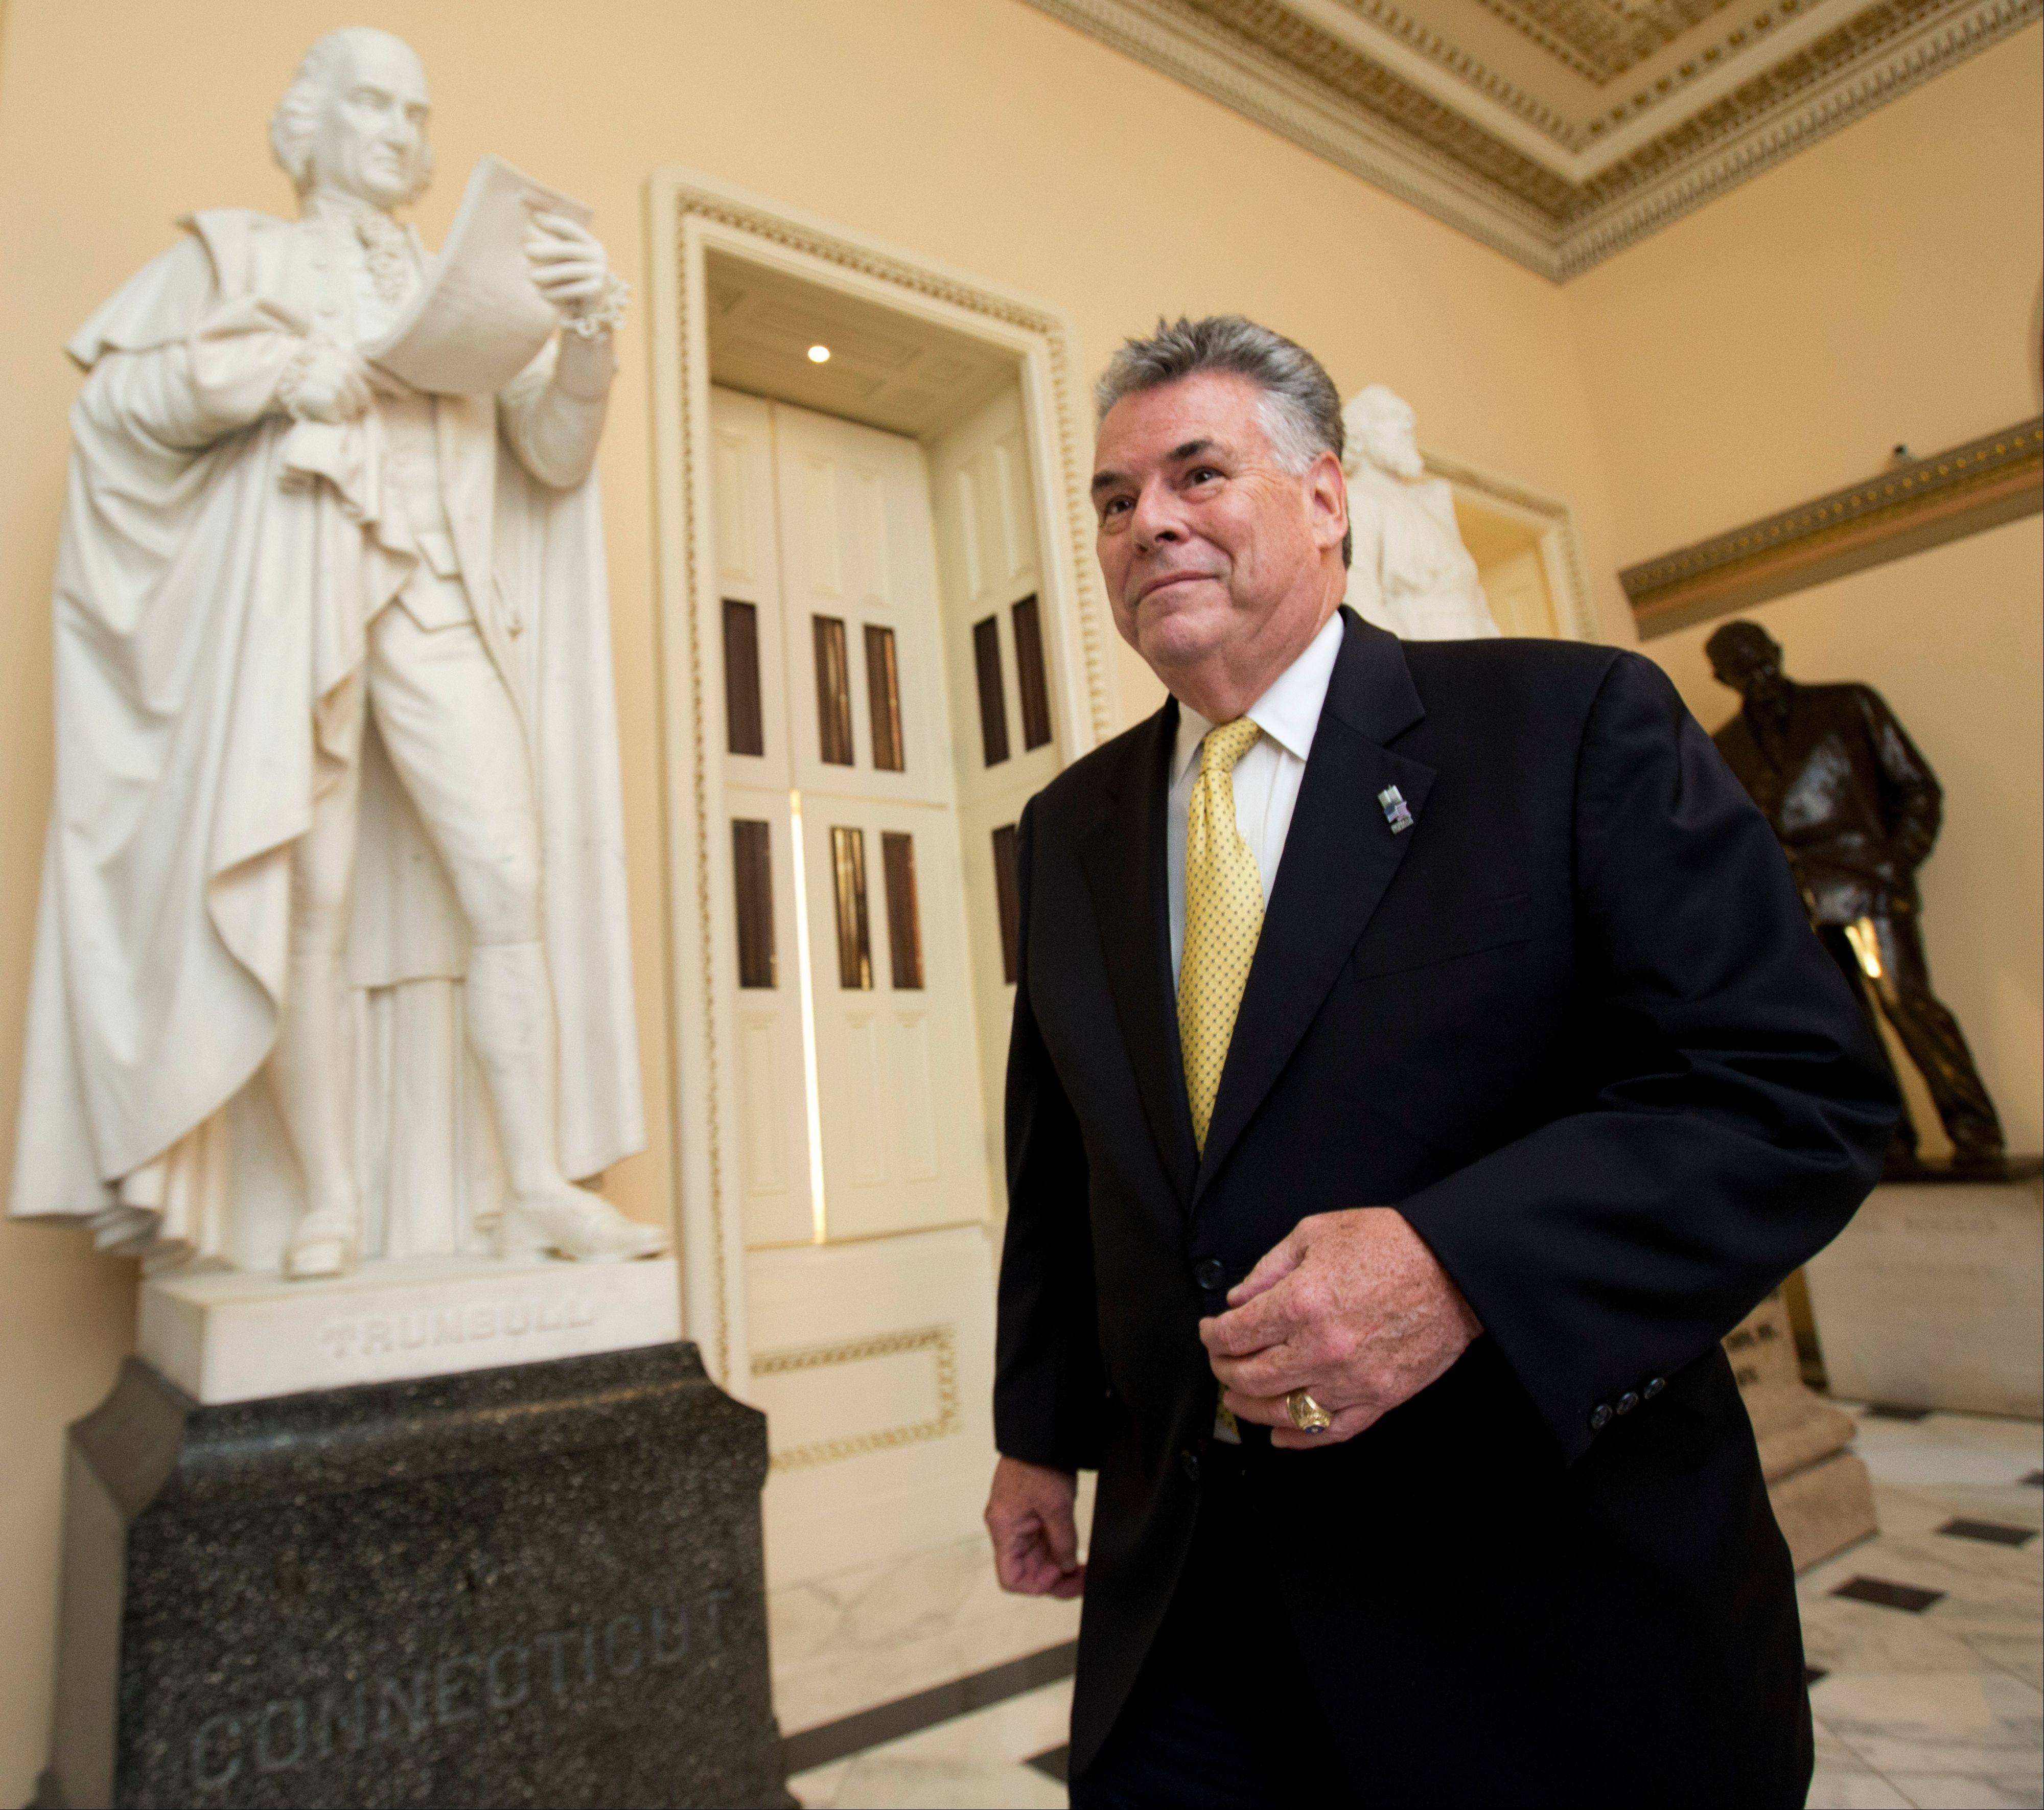 "The Republican Party's two Kings in Congress both voted against GOP leaders' latest effort to prevent President Barack Obama's health care overhaul from becoming entrenched, but for opposite reasons. Rep. Peter King, R-N.Y., says it was a mistake to link curbing ""Obamacare"" with averting a government shutdown."